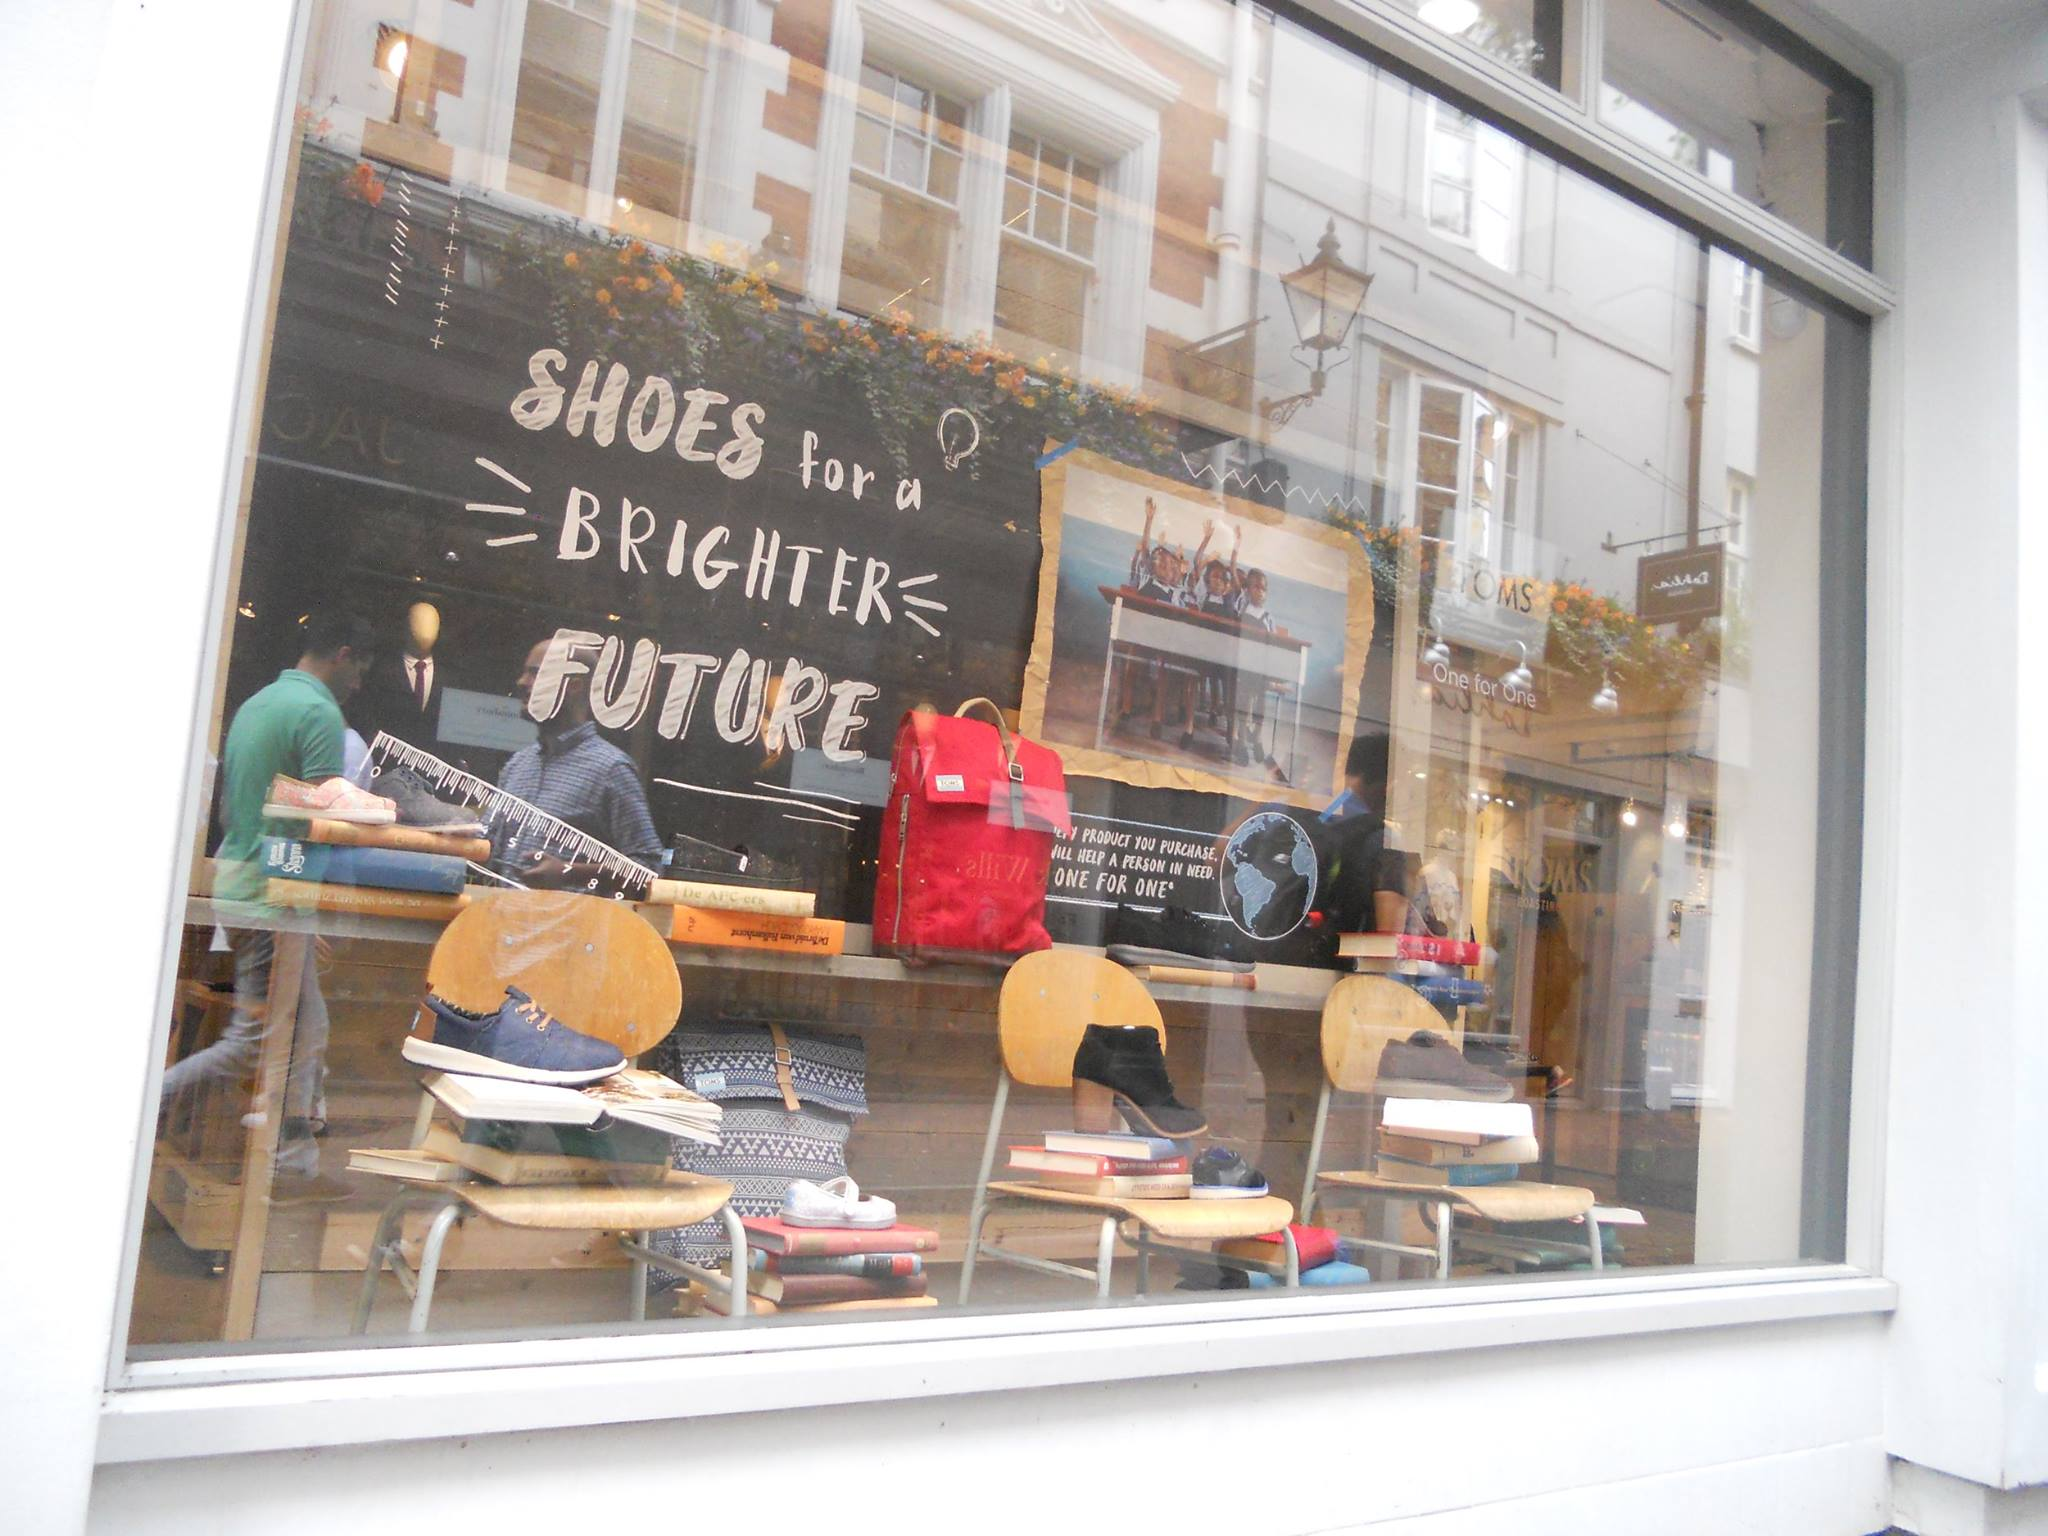 toms-one-for-one-love-windows-to-a-brighter-future